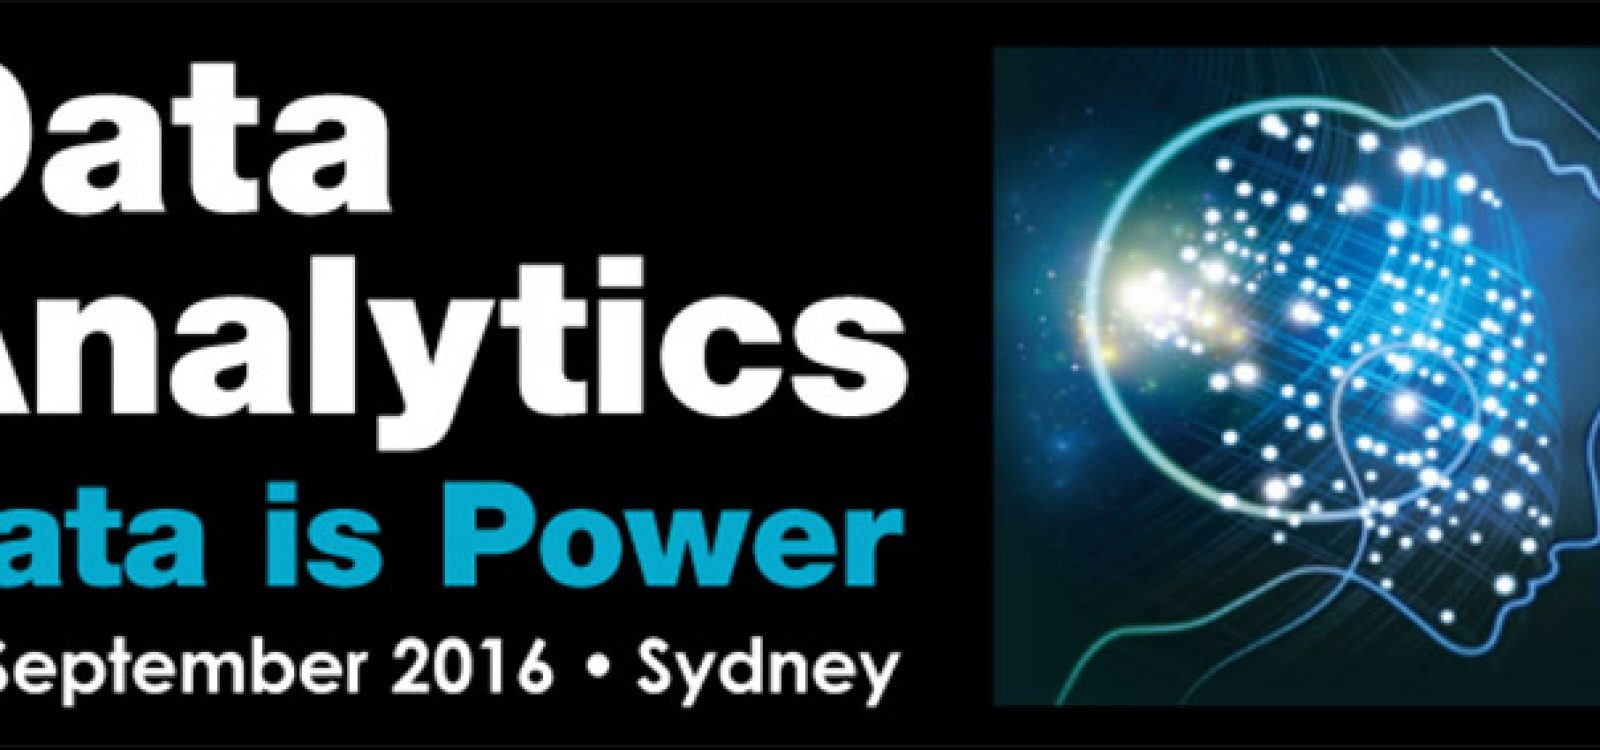 What you can expect at the 2016 Data Analytics Seminar